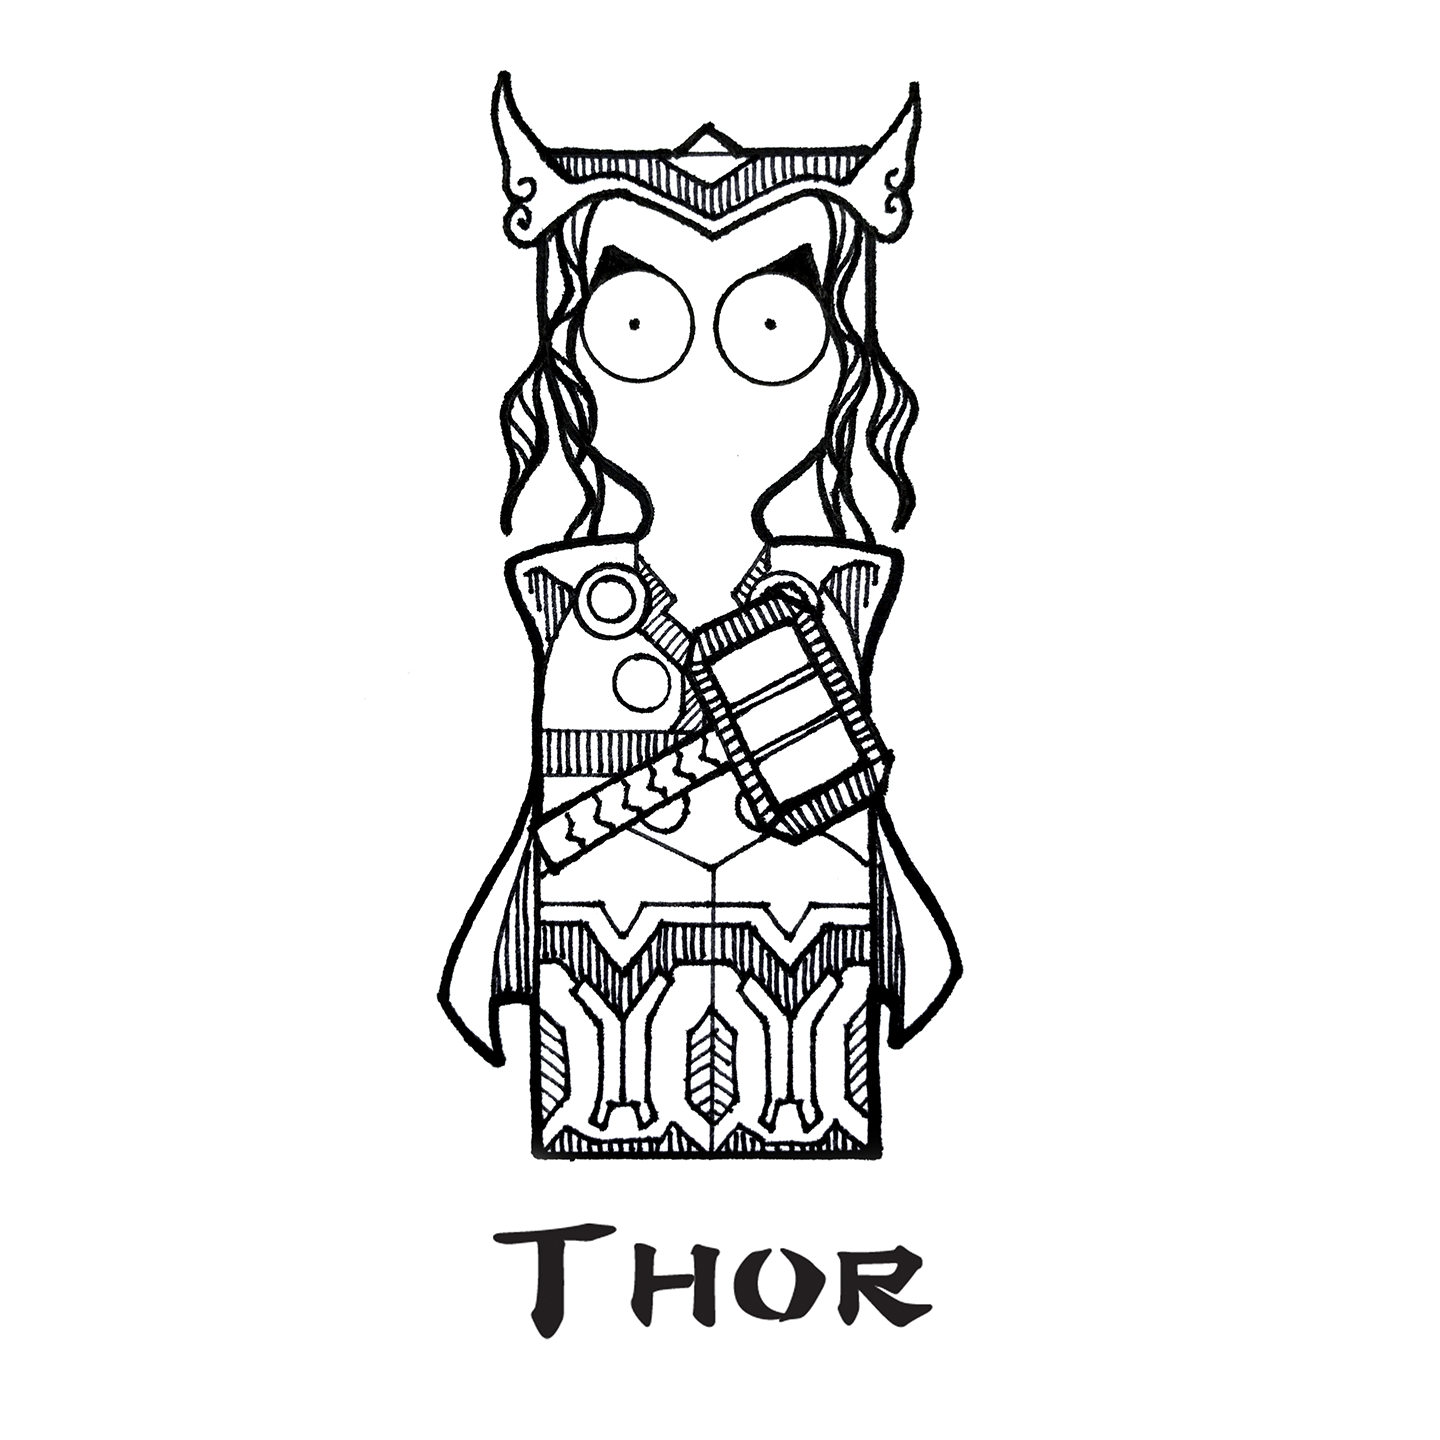 09_thor.png